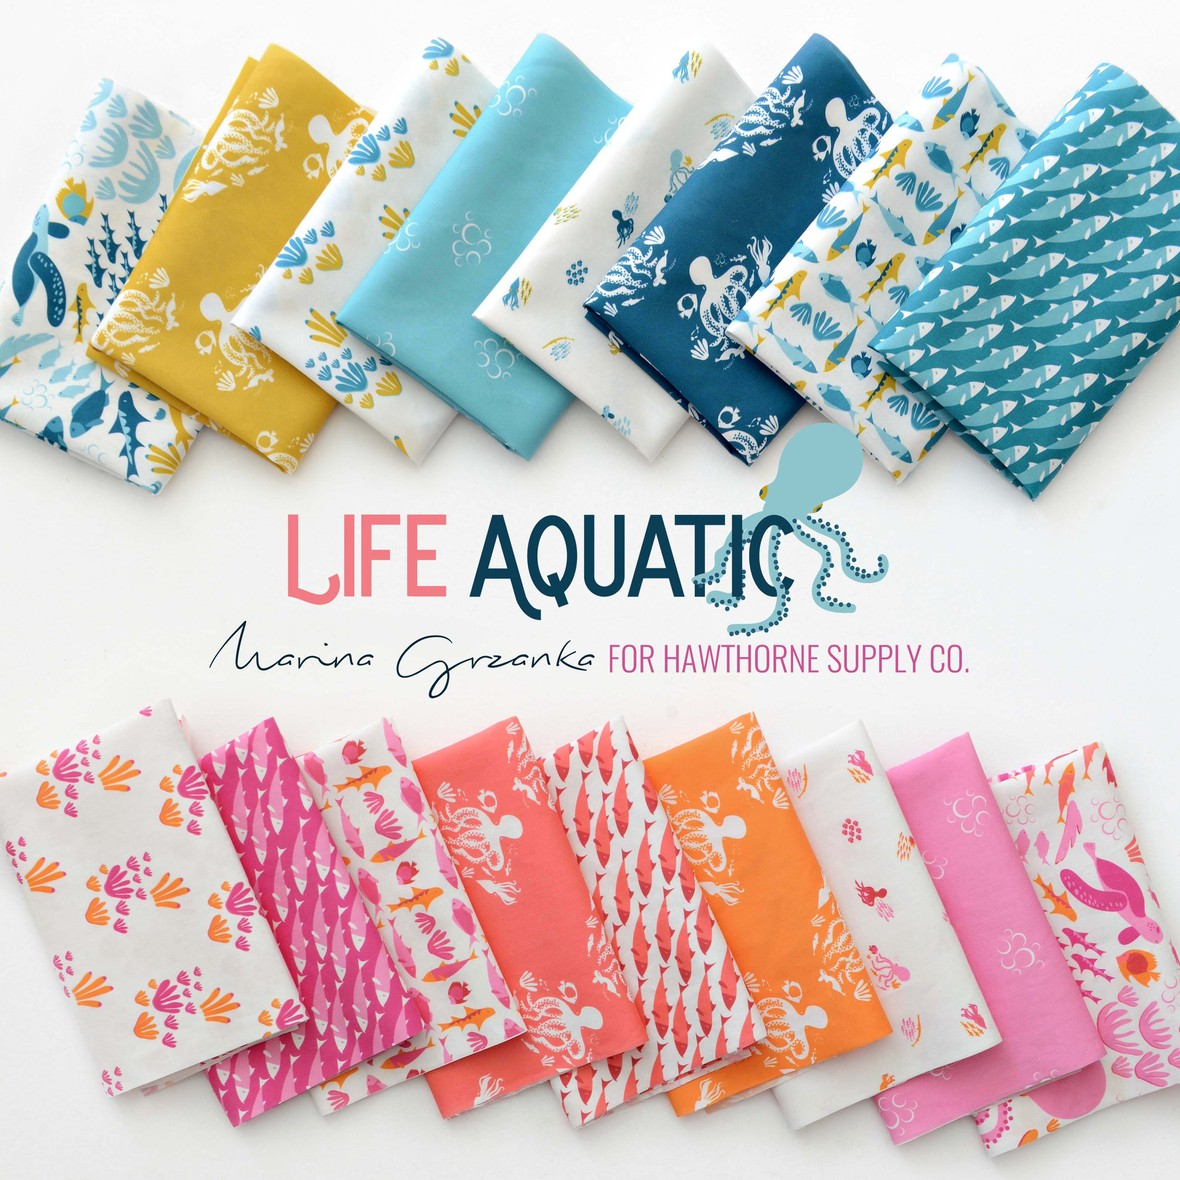 Life Aquatic Fabric Poster Marina Grzanka for Hawthorne Supply Co 1